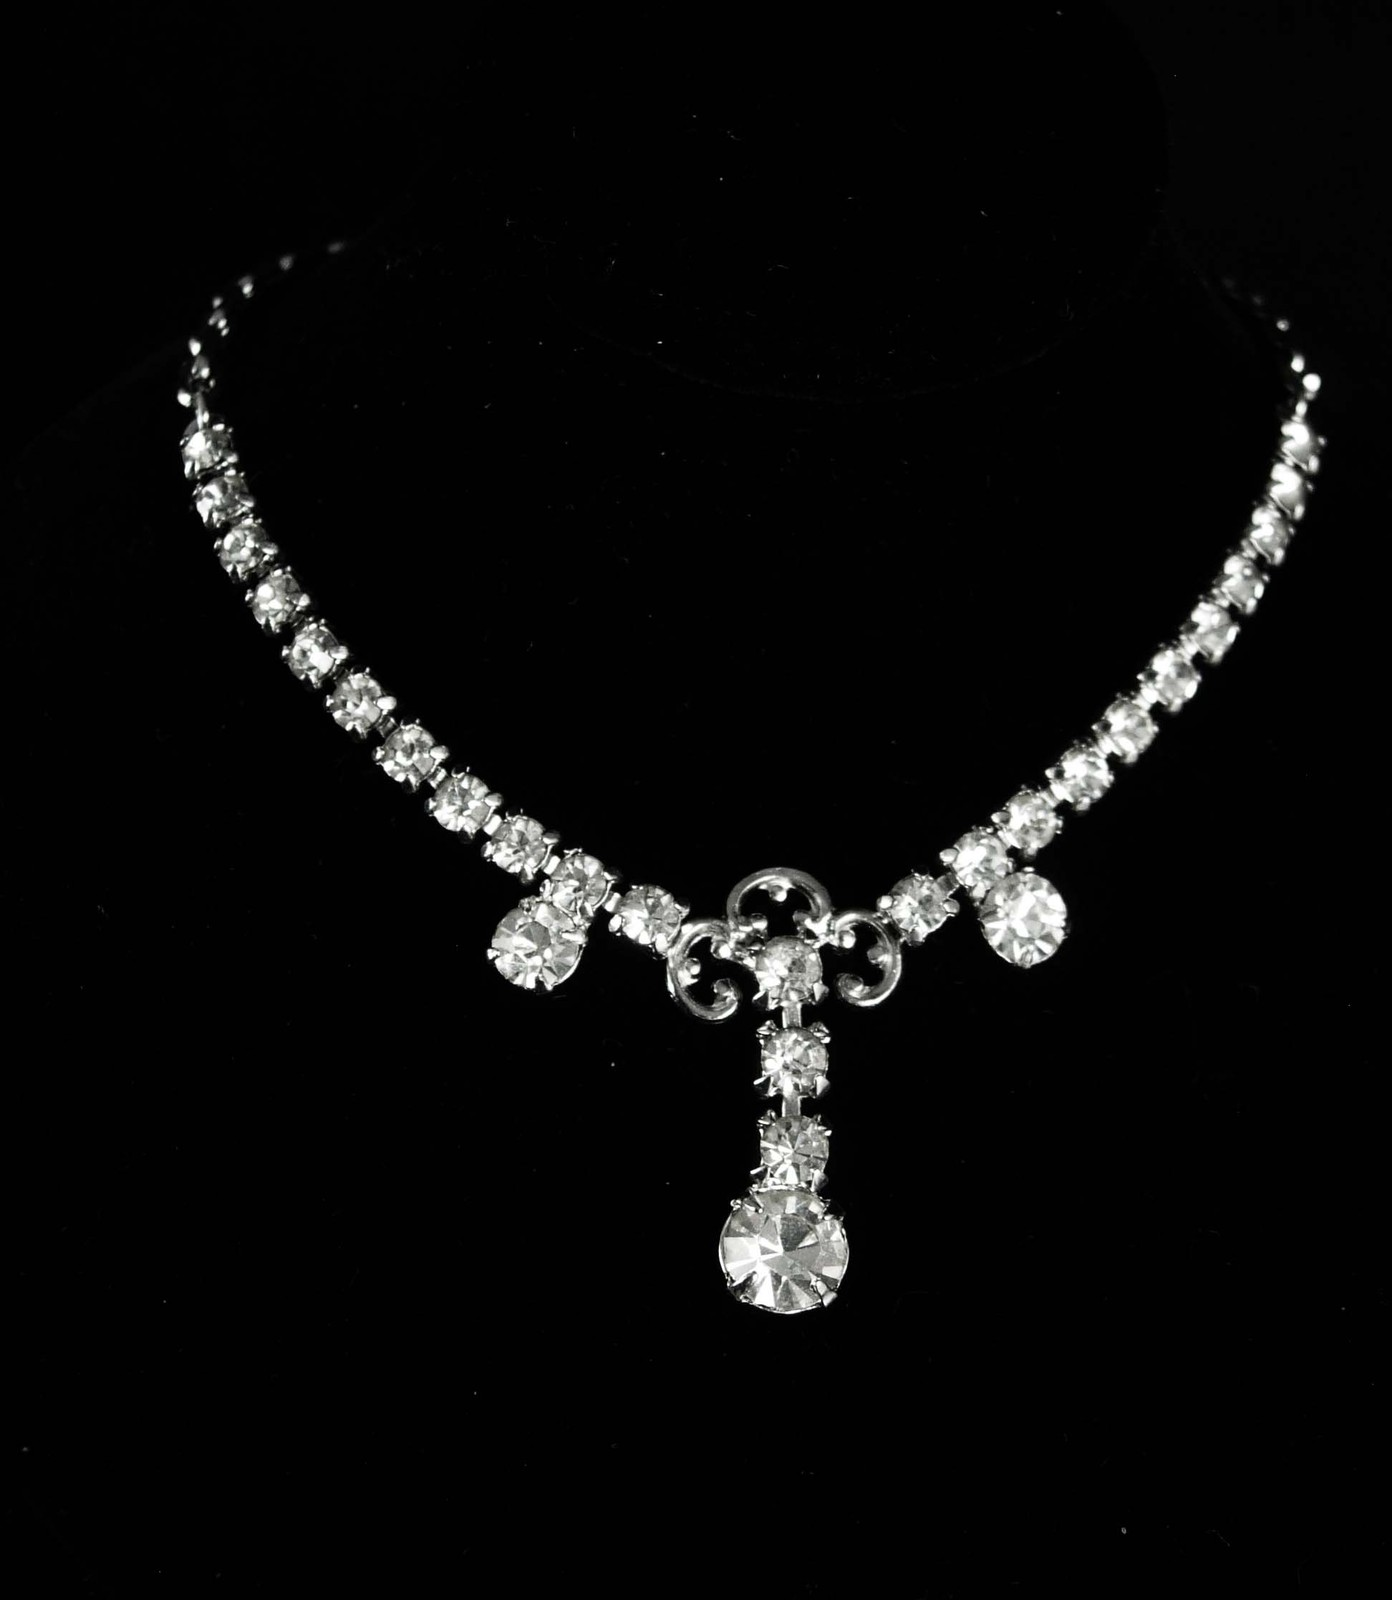 Primary image for Vintage Bridal necklace Dazzling rhinestone choker Vintage Rhinestone Necklace